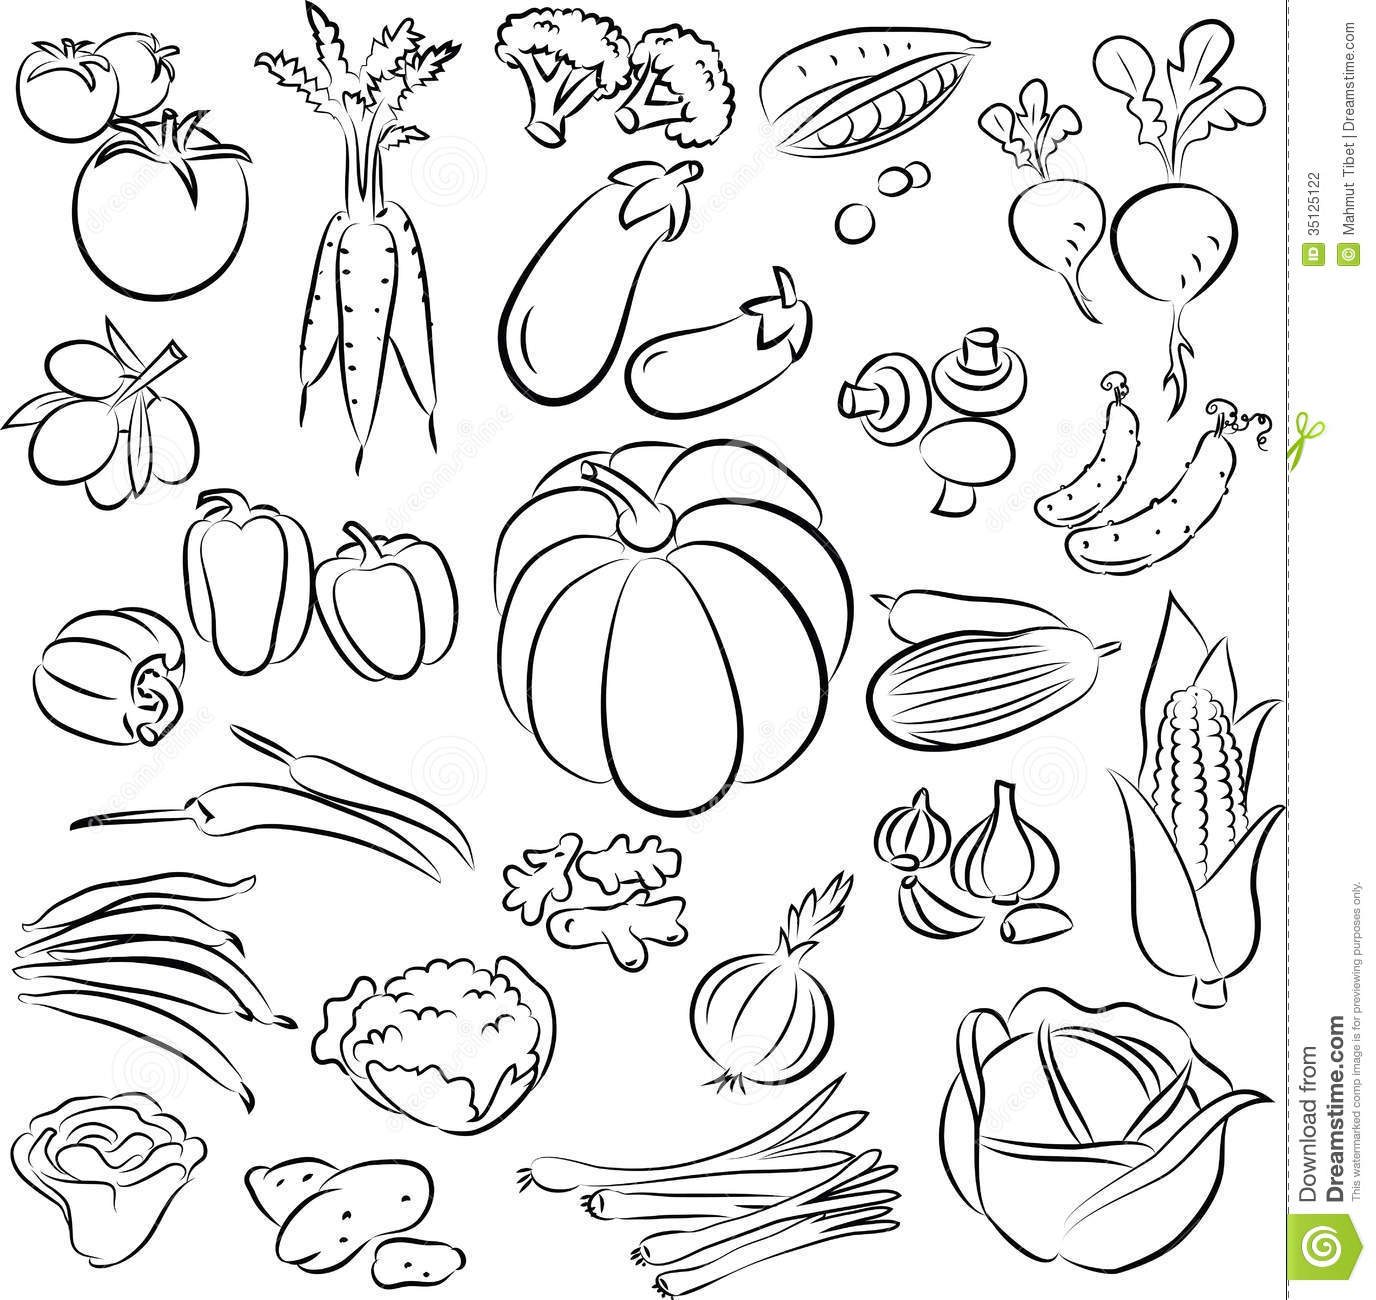 Line Drawing Zucchini : Vegetables set stock photography image